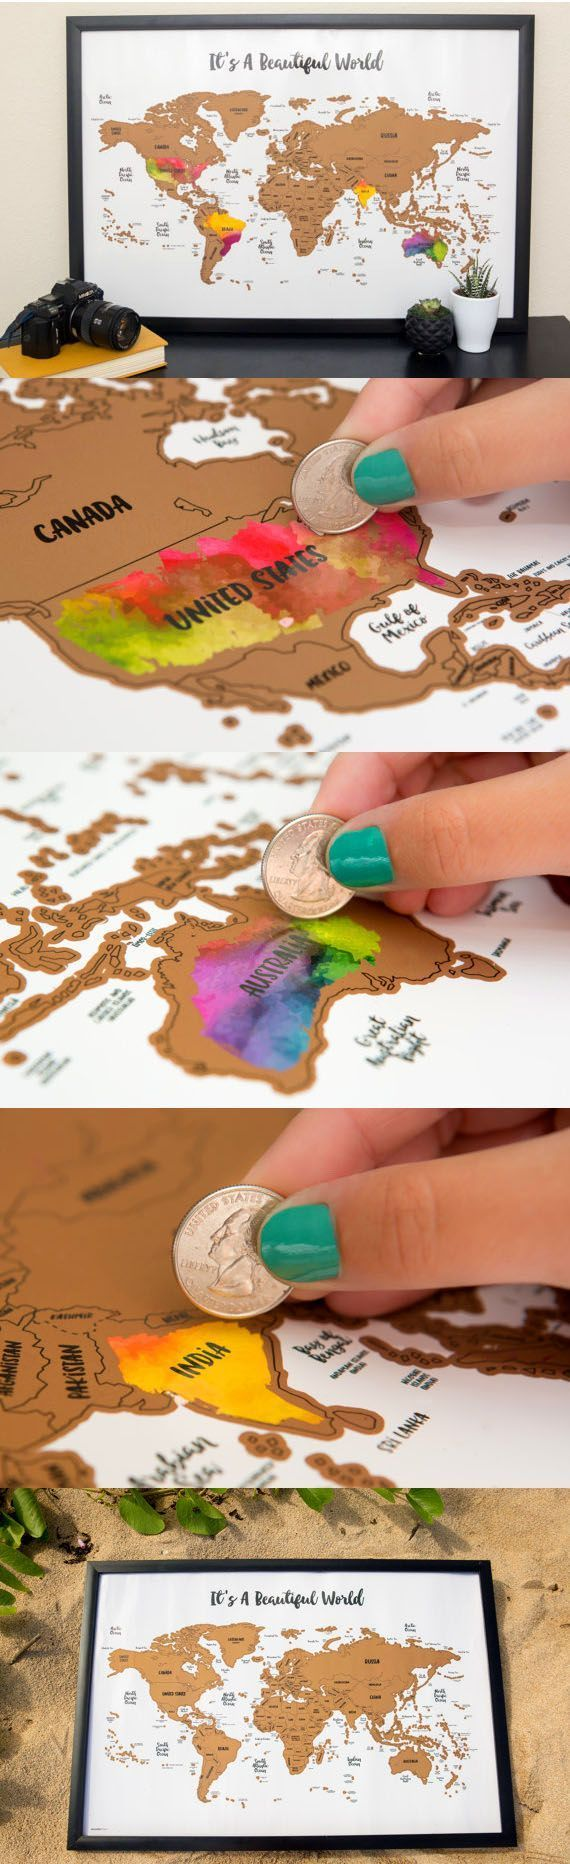 Scratch your travels with this gorgeous original watercolor world map. Bright, bold & interactive… - http://gloriouswallstickers.com/scratch-your-travels-with-this-gorgeous-original-watercolor-world-map-bright-bold-interactive/